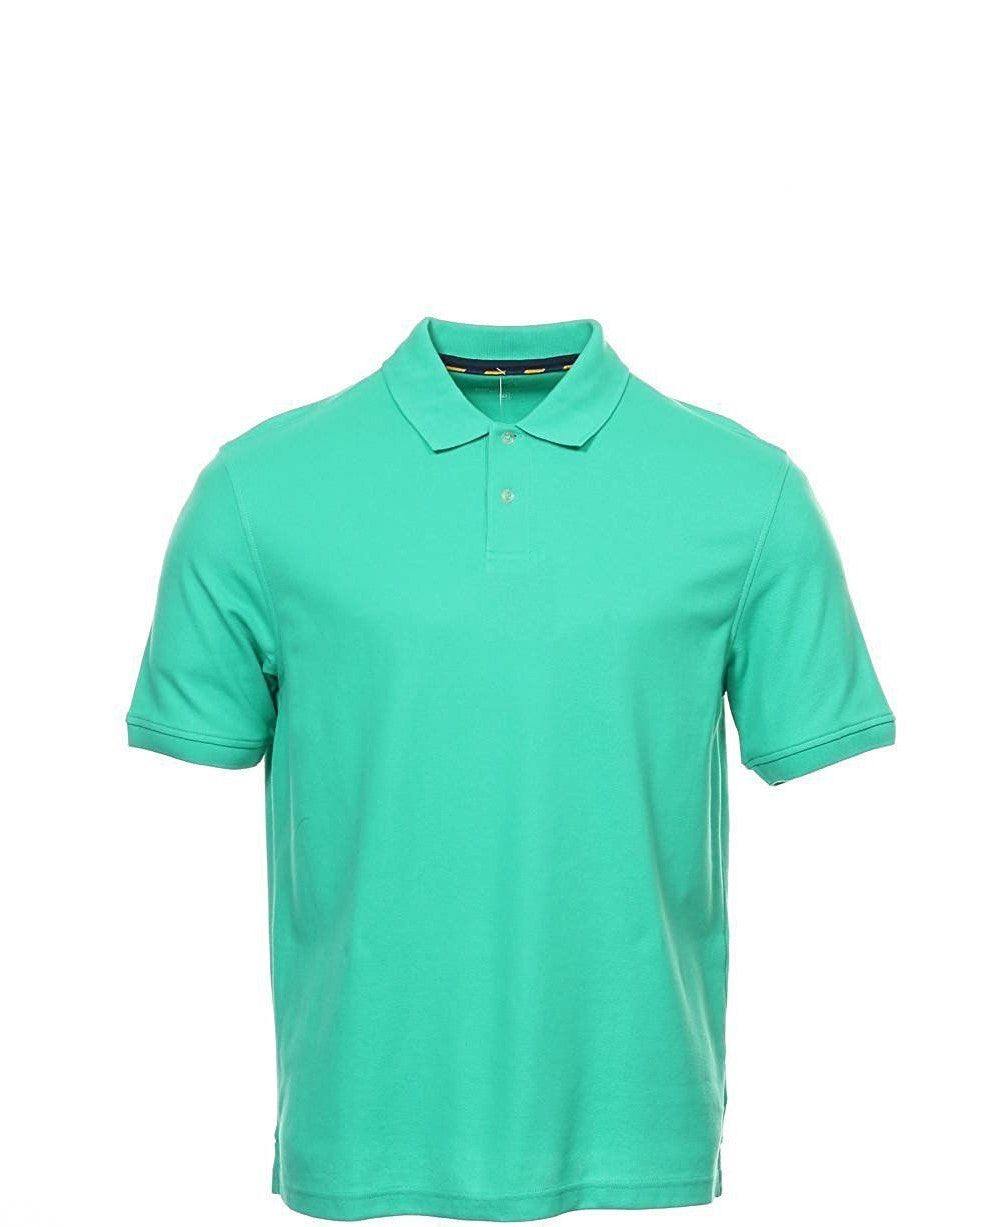 Club Room Short Sleeve Solid Estate Performance Polo Menthol Mint Size M